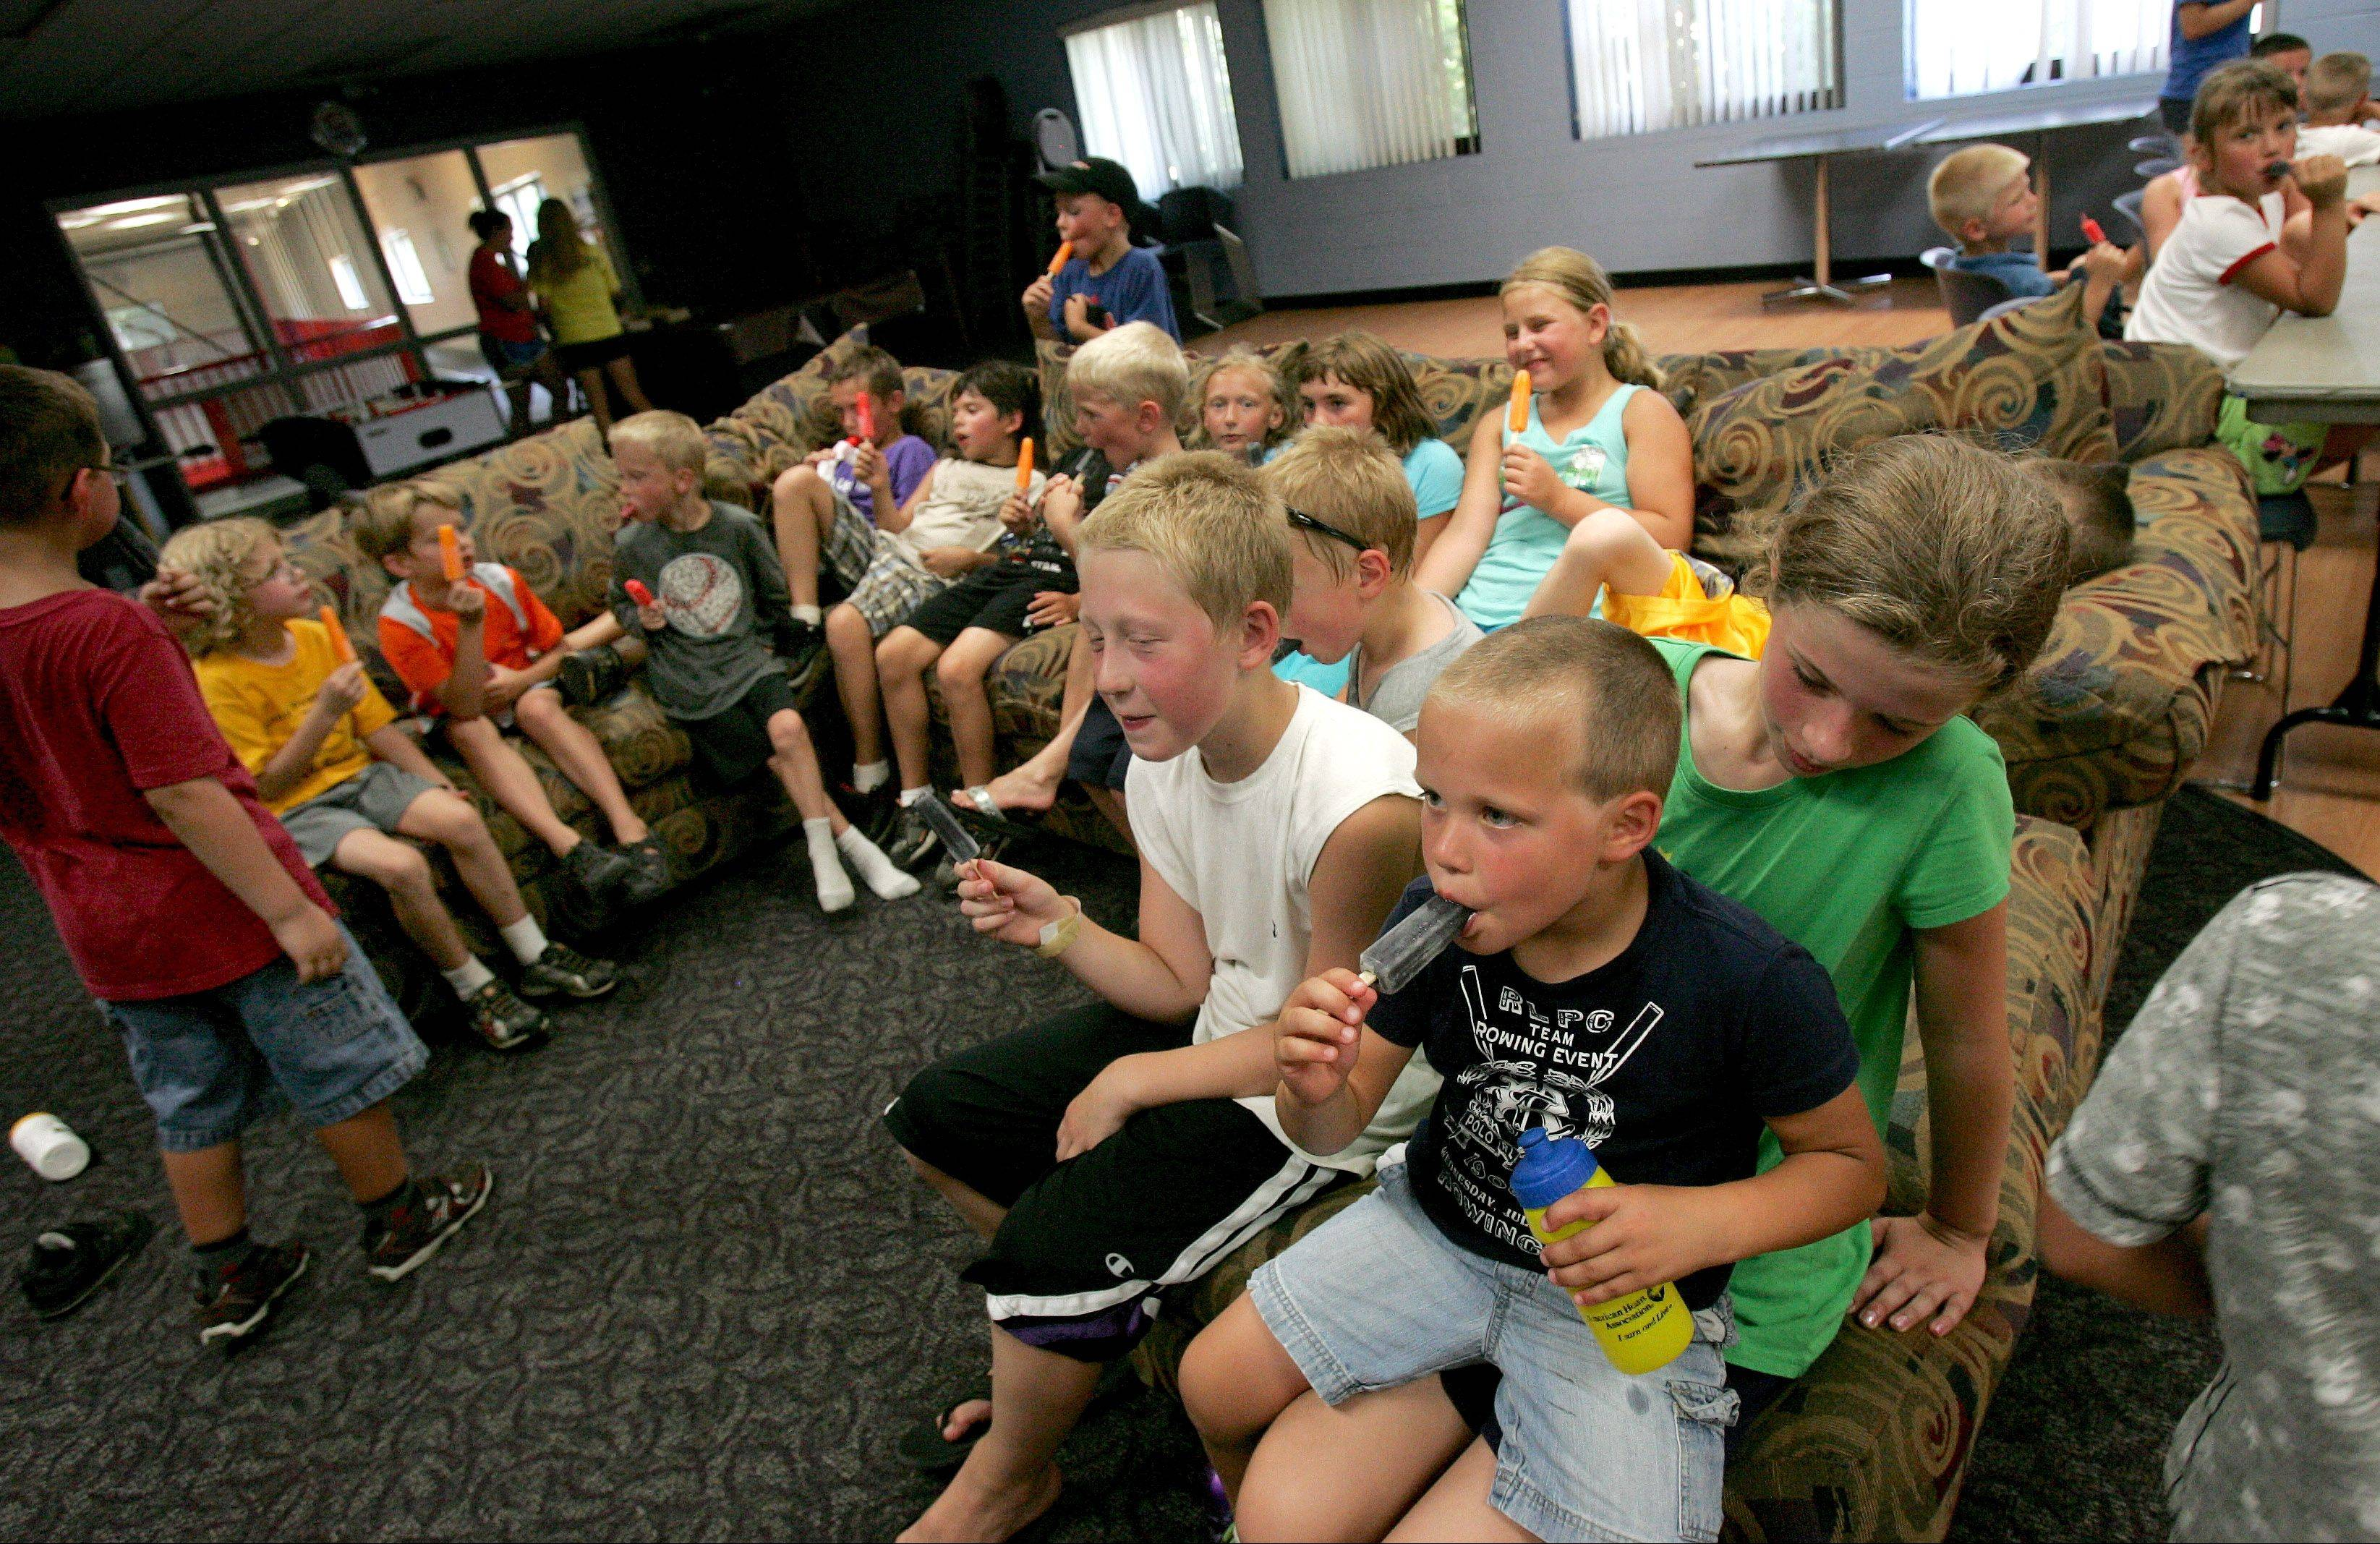 Kids from the Camp Adventure and Camp Butterflies at the Itasca Recreation Center take a Popsicle break inside Tuesday.